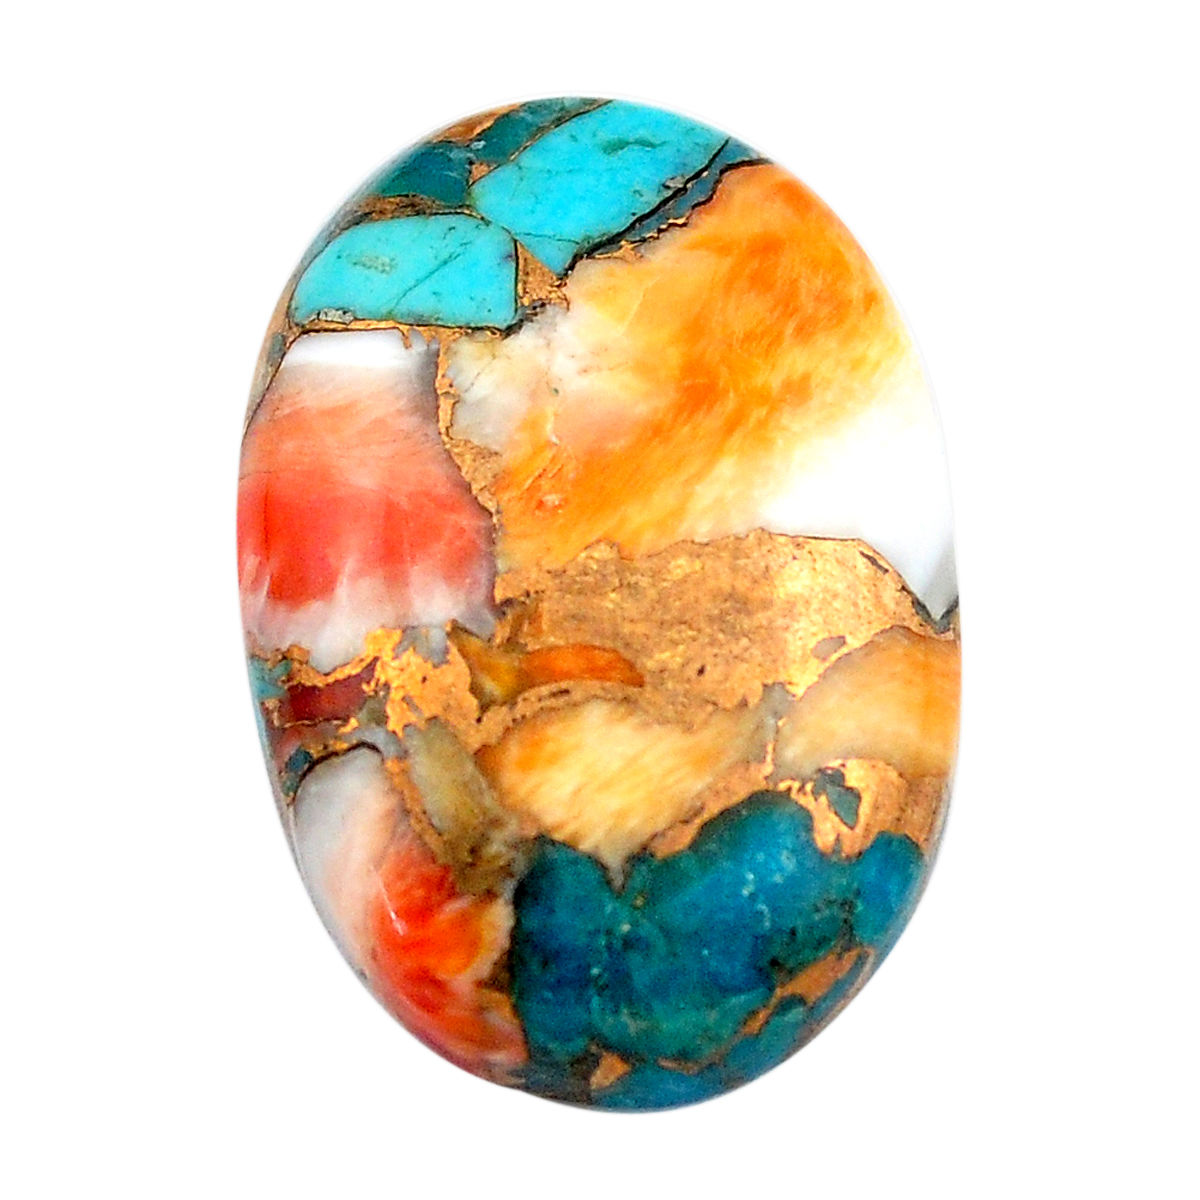 Super Selected Beautiful Rare Copper Turquoise With Spiny Oyster Shell Round Shape 28x5 mm Loose Gemstone Free Shipping 34 Cts